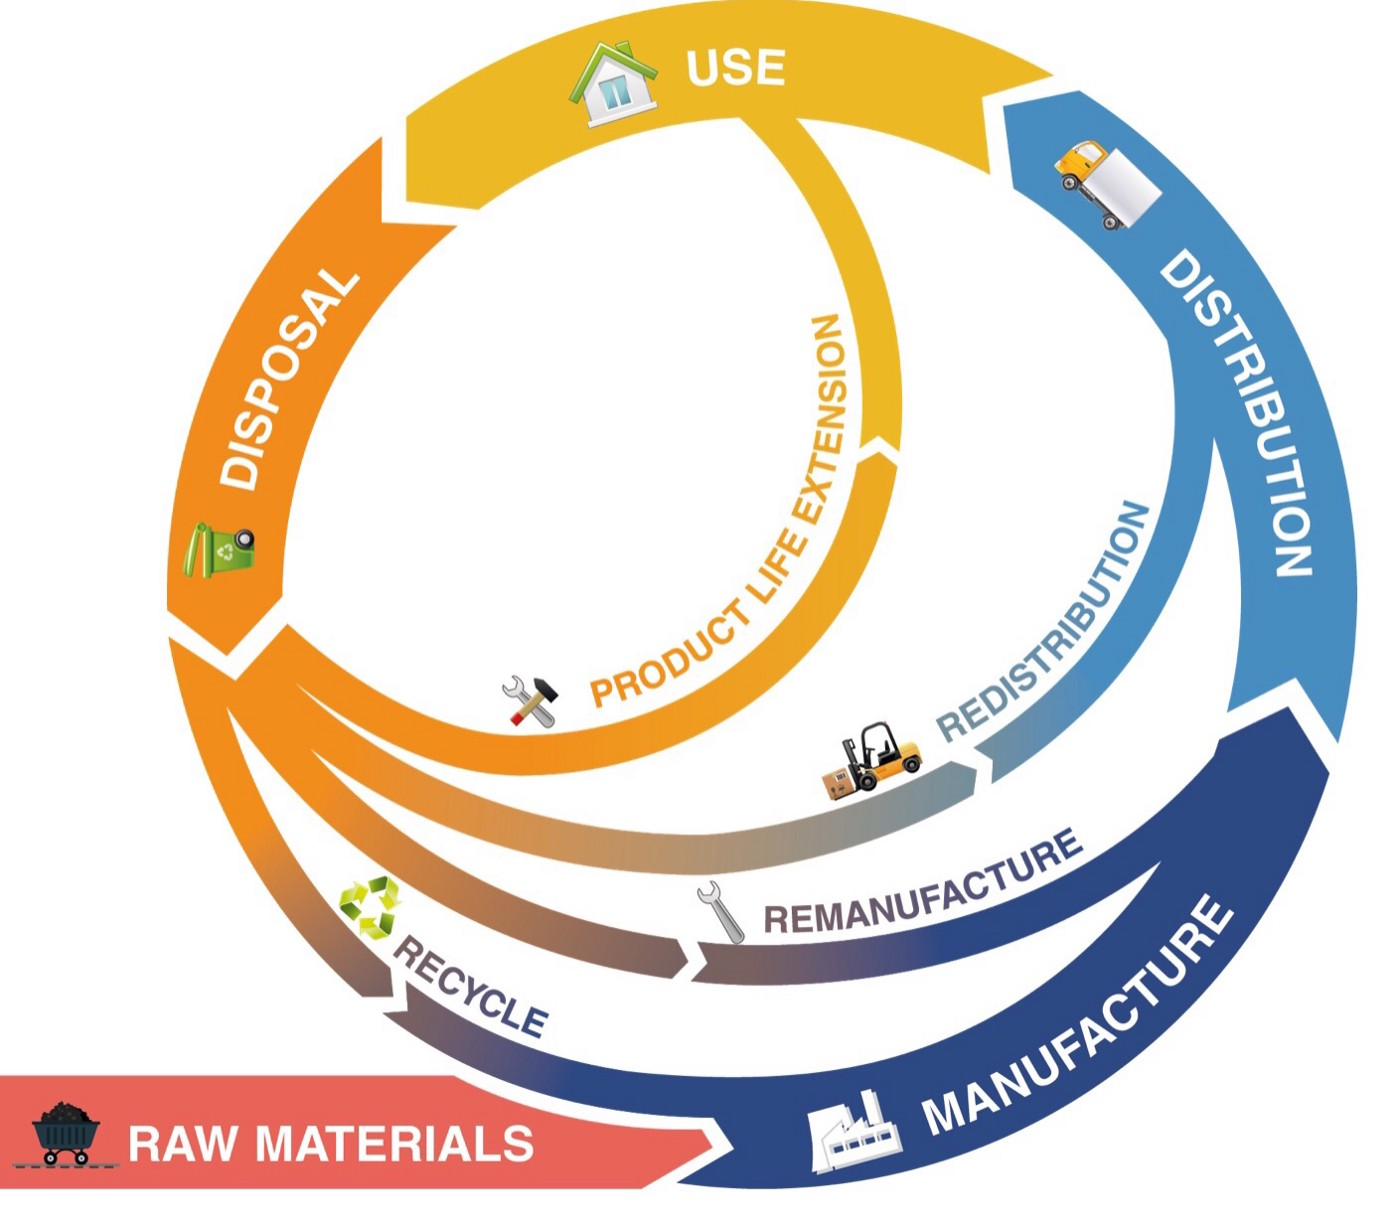 A diagram representing a circular economy, where resources are fed back into the process instead of going to landfill.